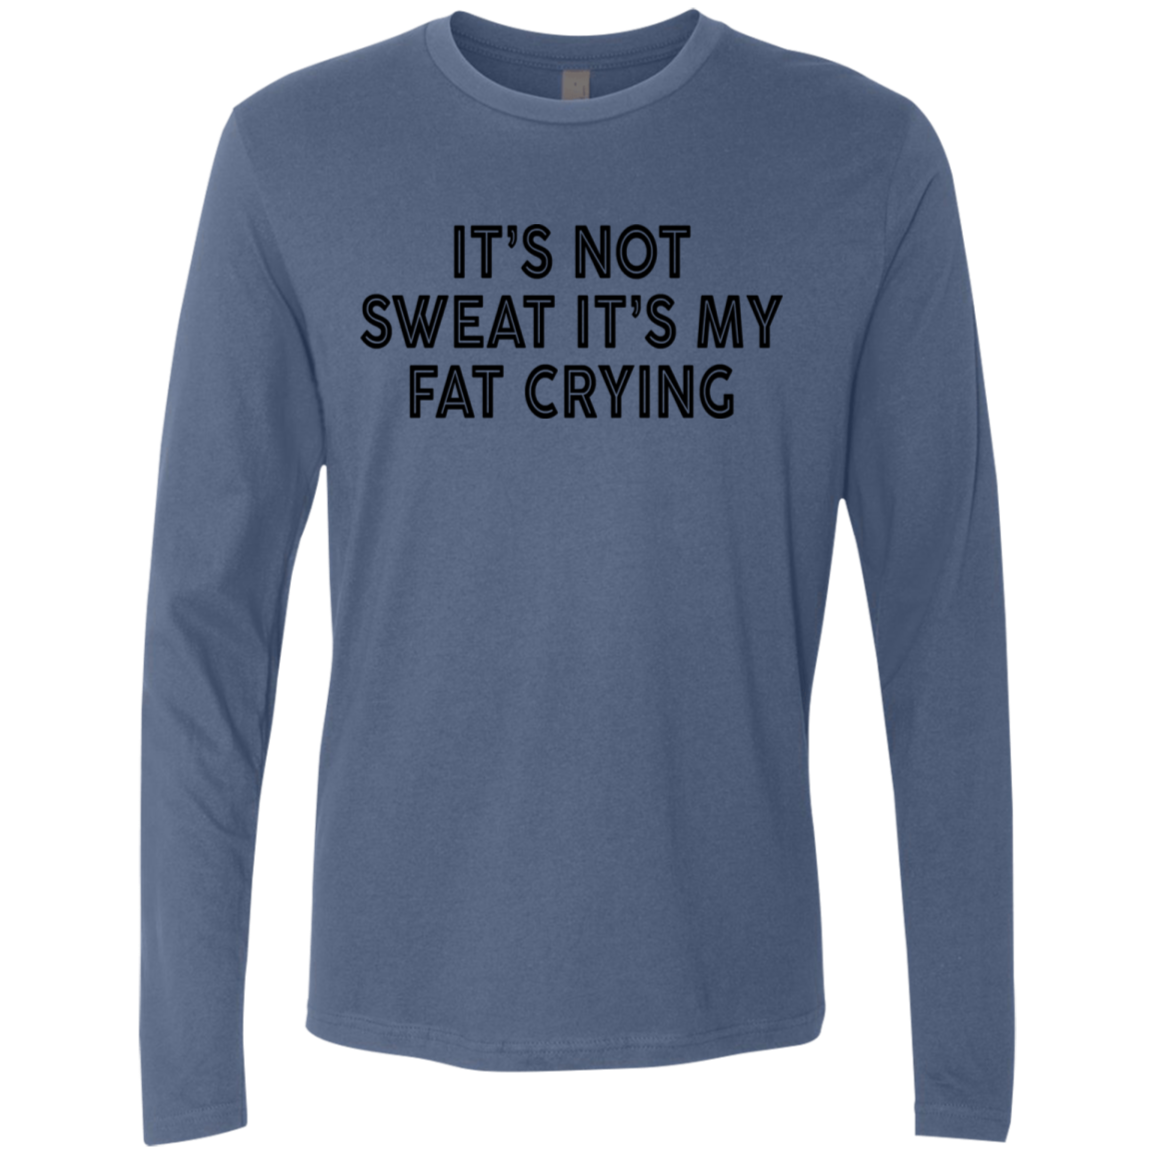 It's Not Sweat It's My Fat Crying Men's Long Sleeve Tee